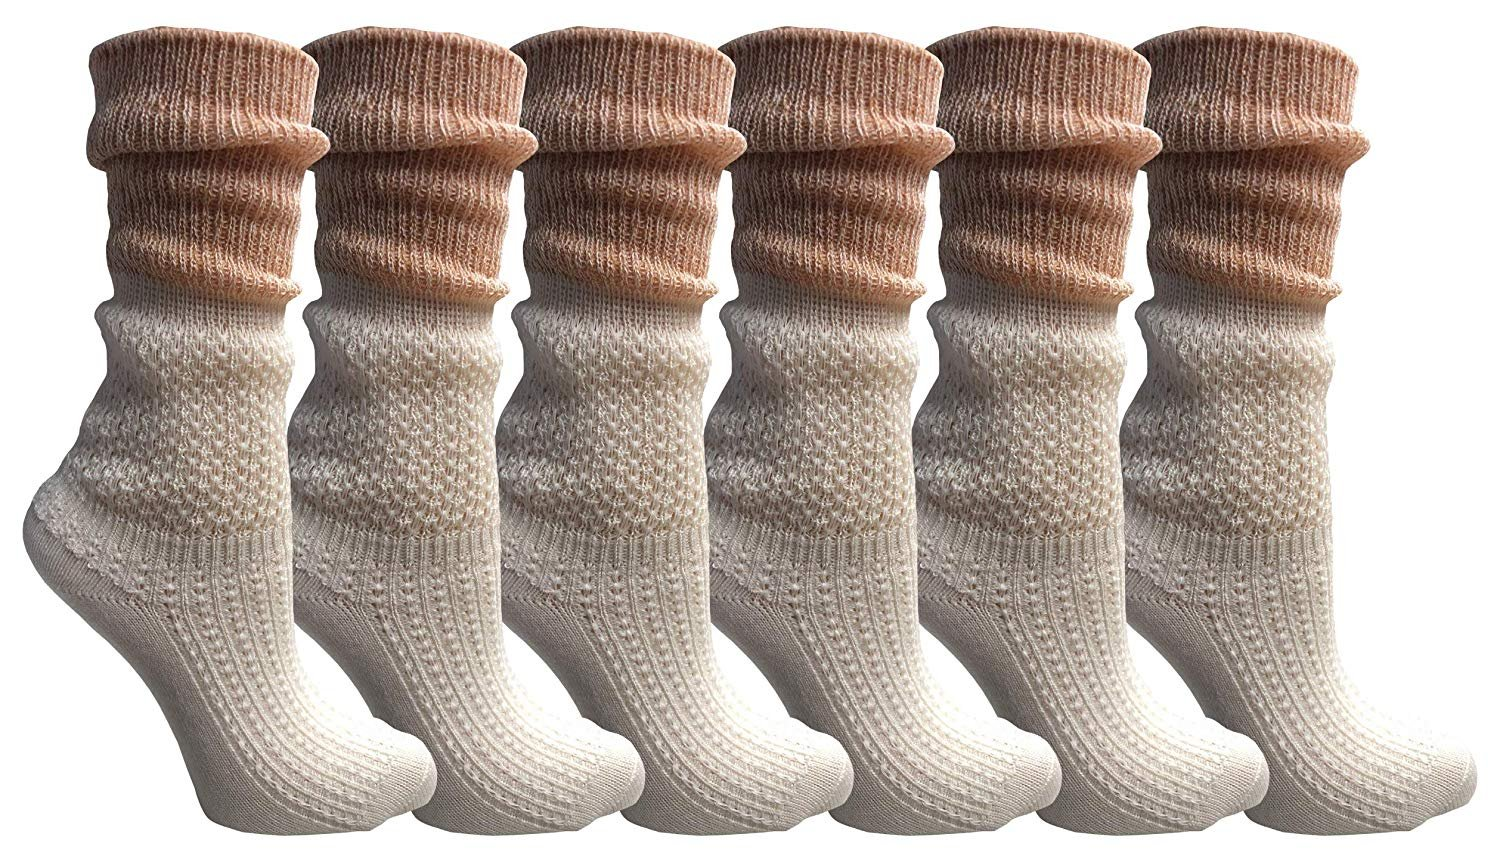 Unique Frilly Cuff Fashion Trendy Ankle Socks Yacht/&Smith Ruffle Slouch Socks for Women